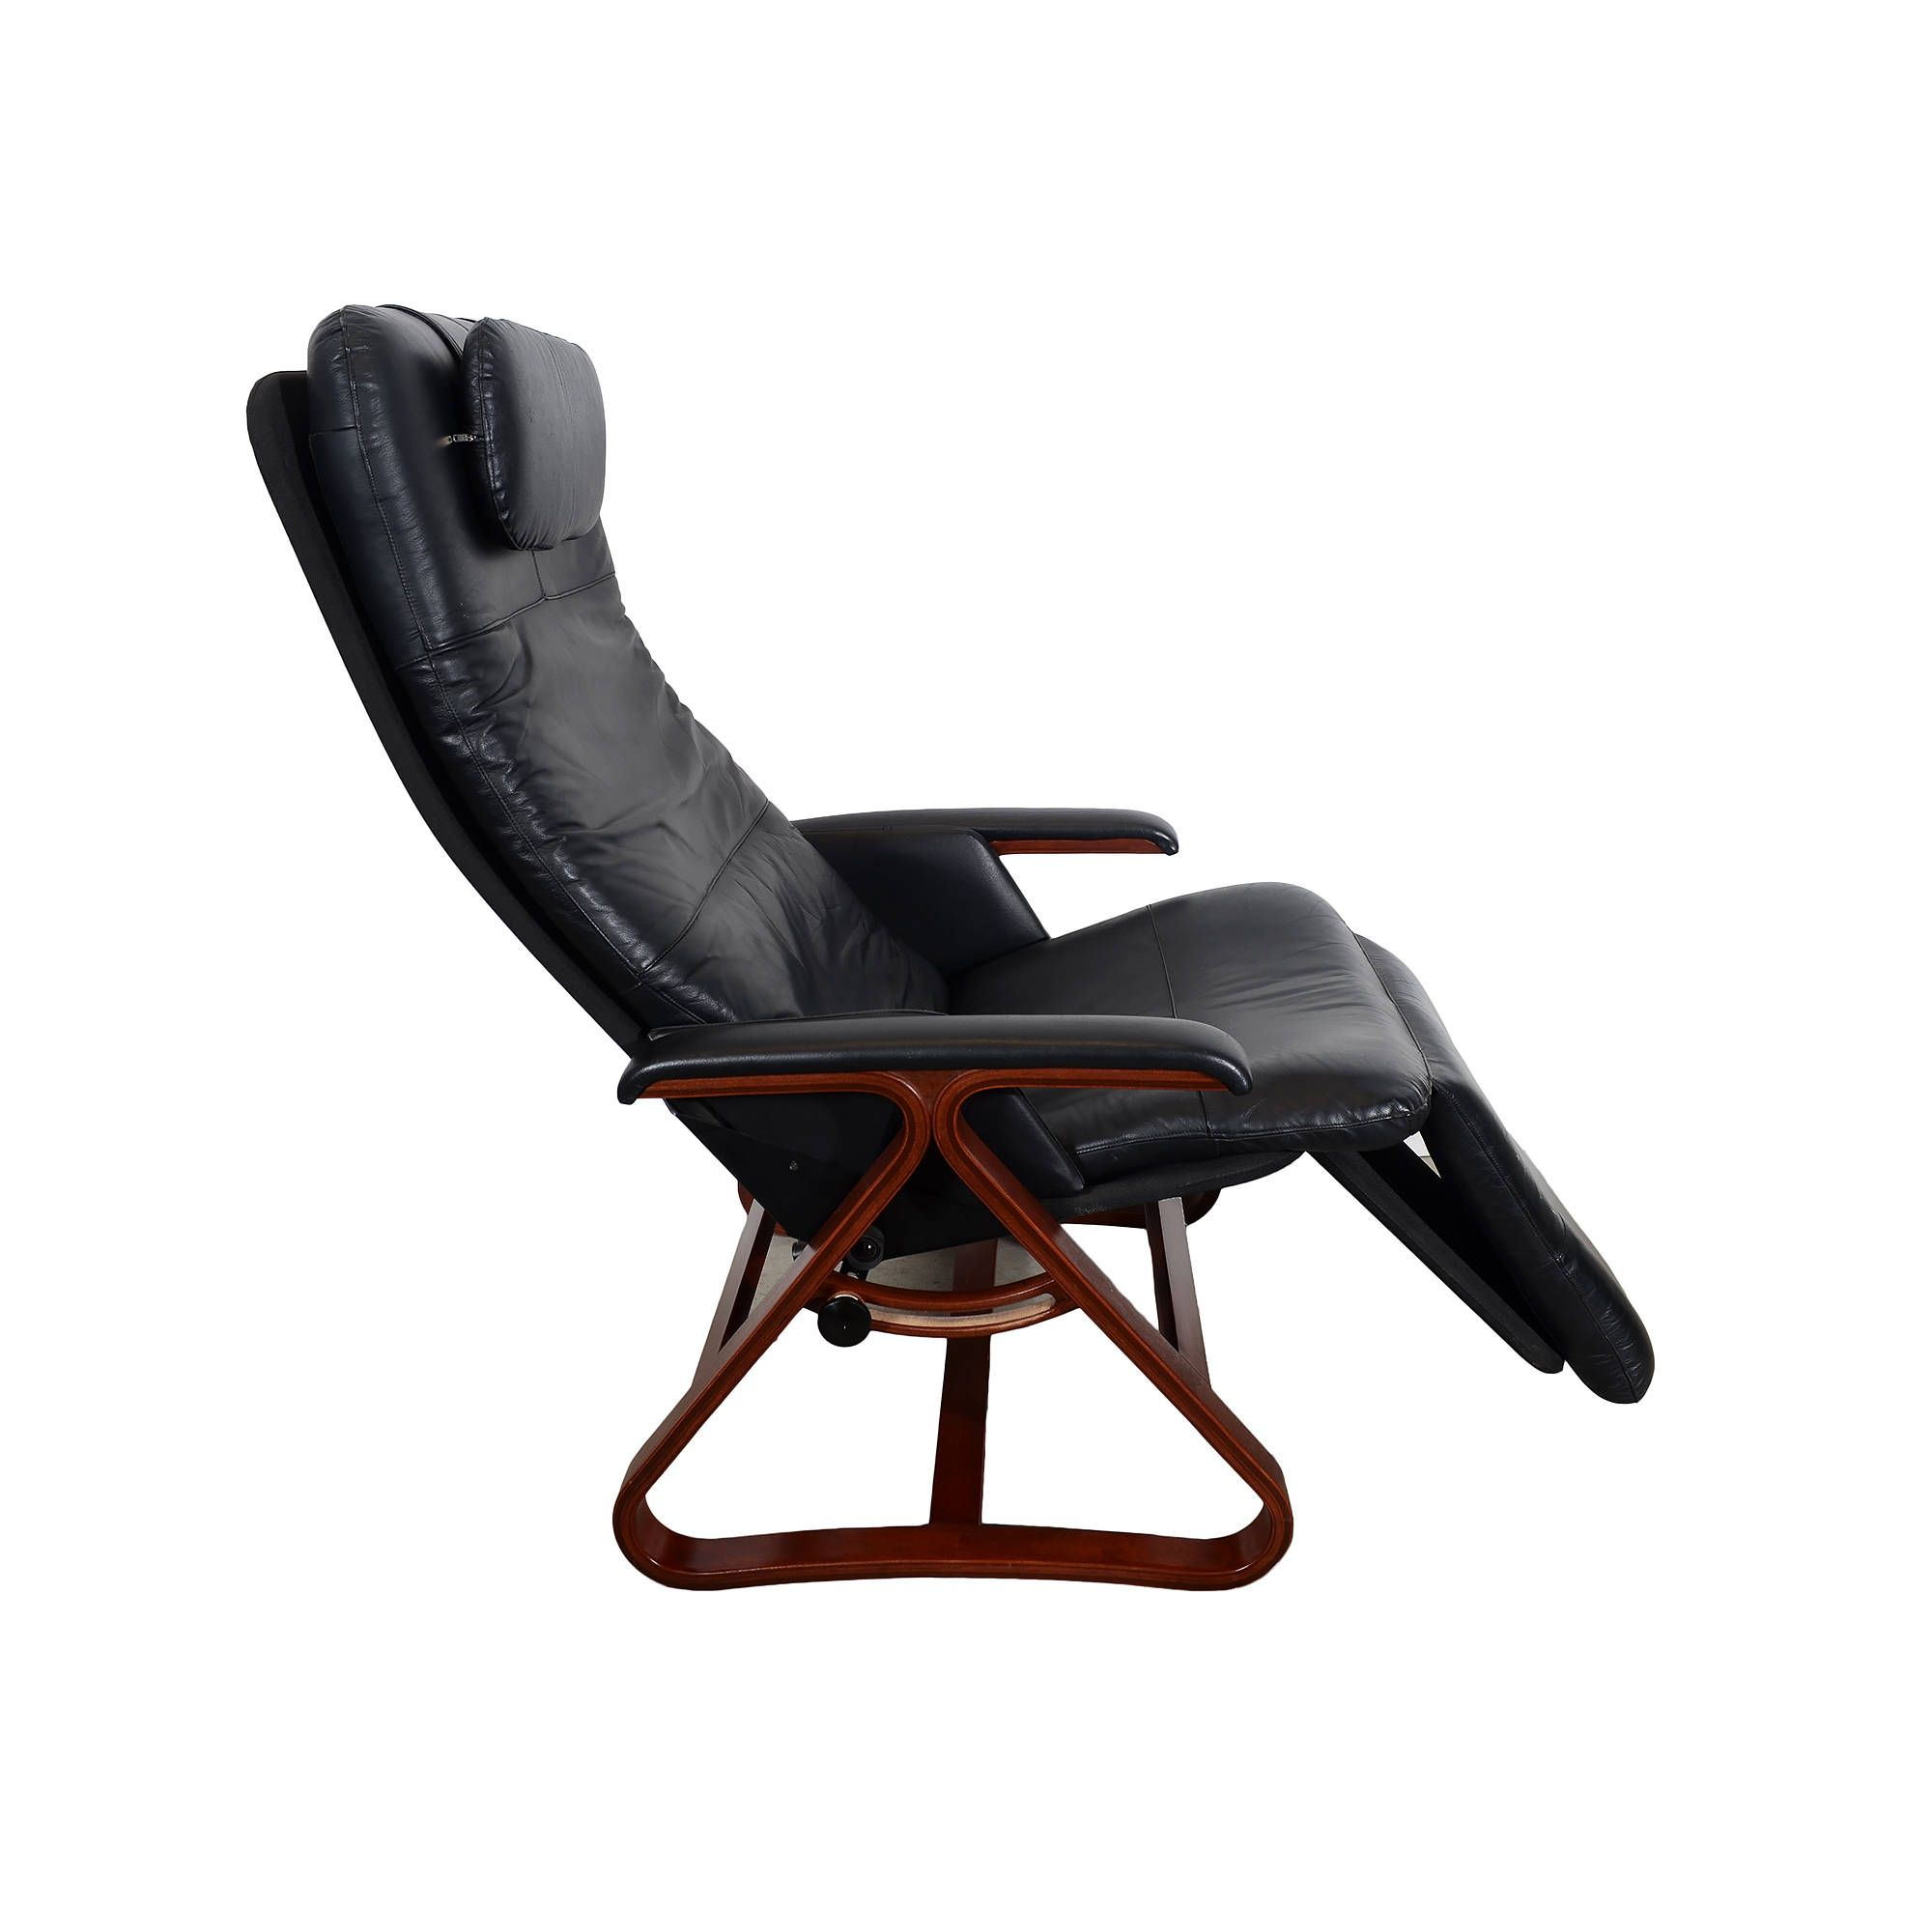 teak chaise image gravity infinity cleaning chair of caravan inside and cookwithalocal walmart outdoor sports grey lounge zero home